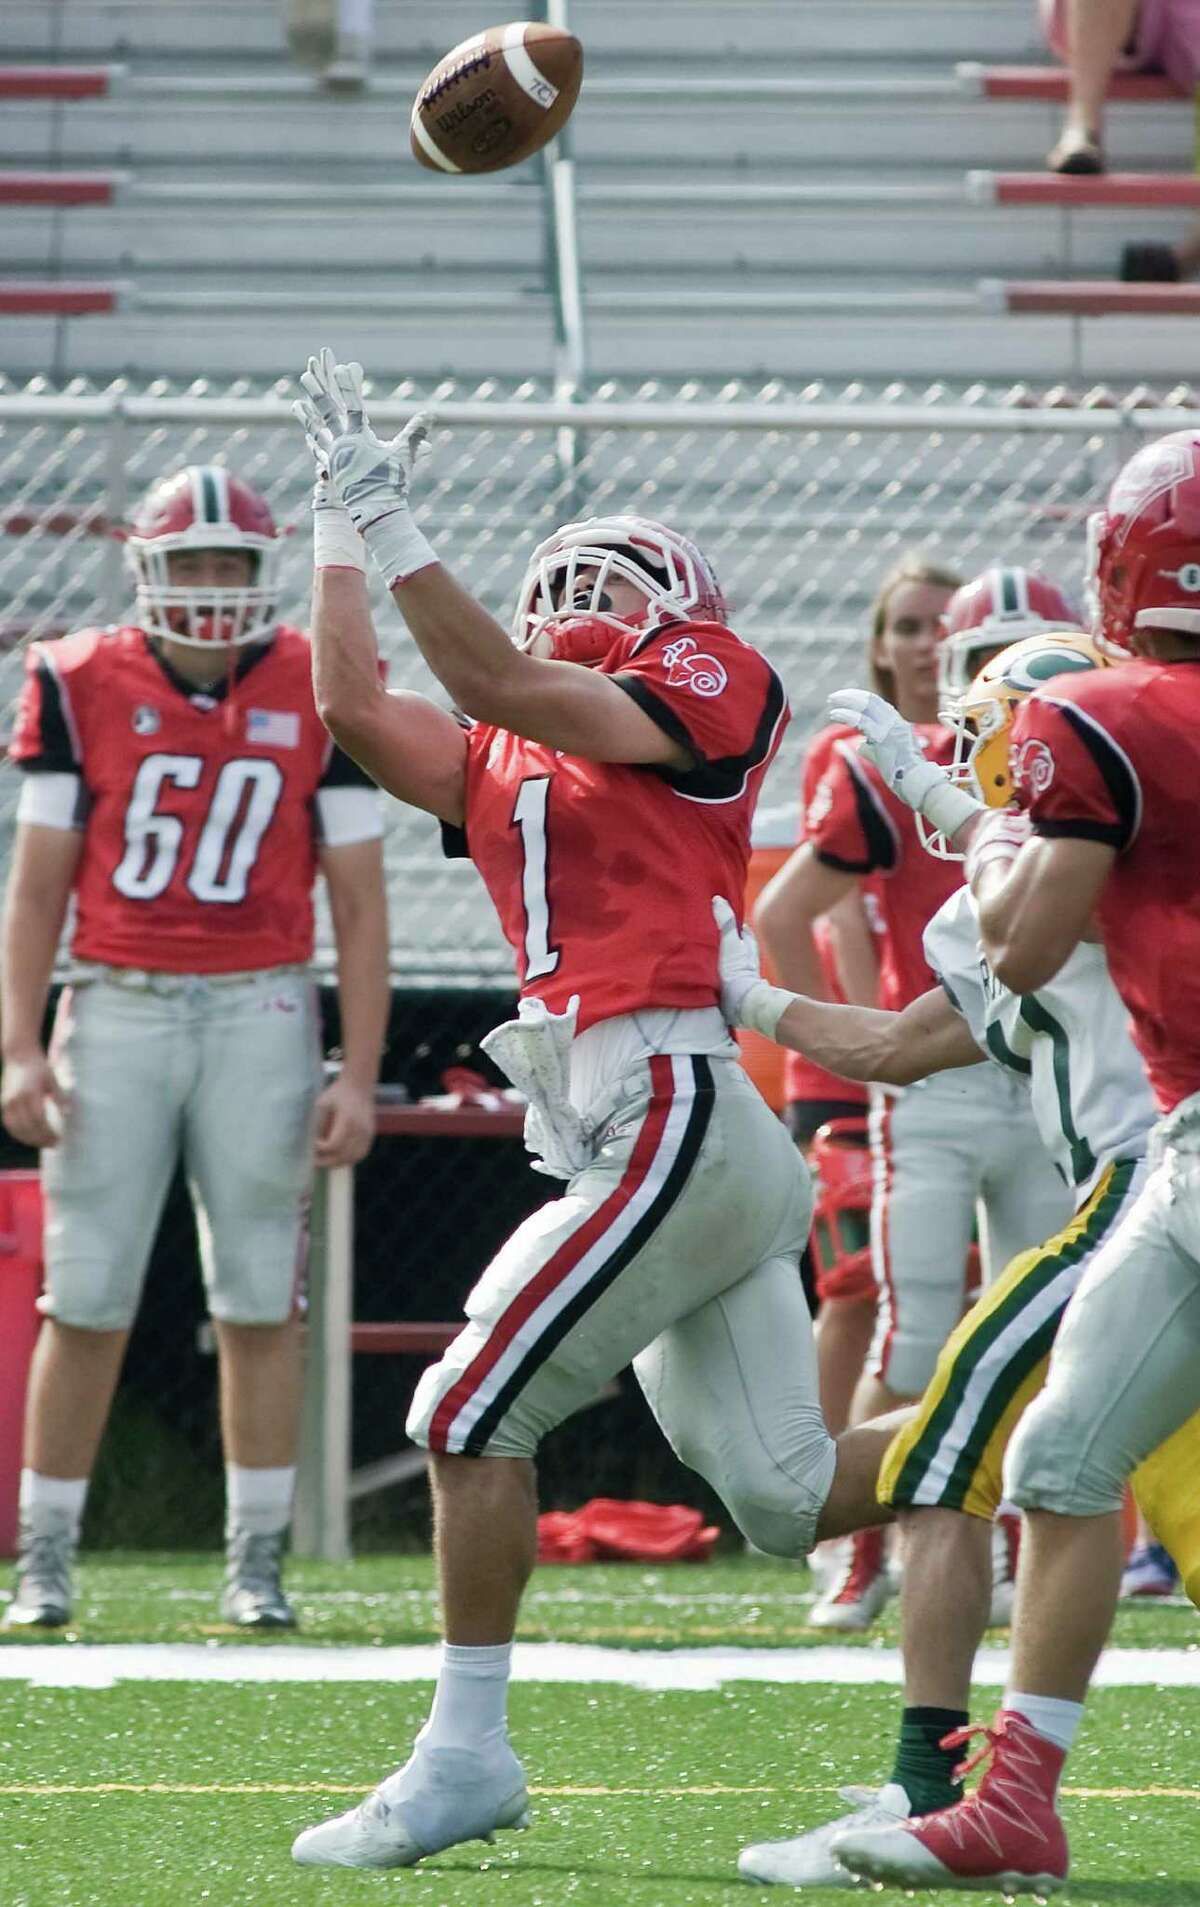 New Canaan High School's Tom Root tries for the pass in a game against Trinity Catholic High School, played at New Canaan. Saturday, Sept. 10, 2016